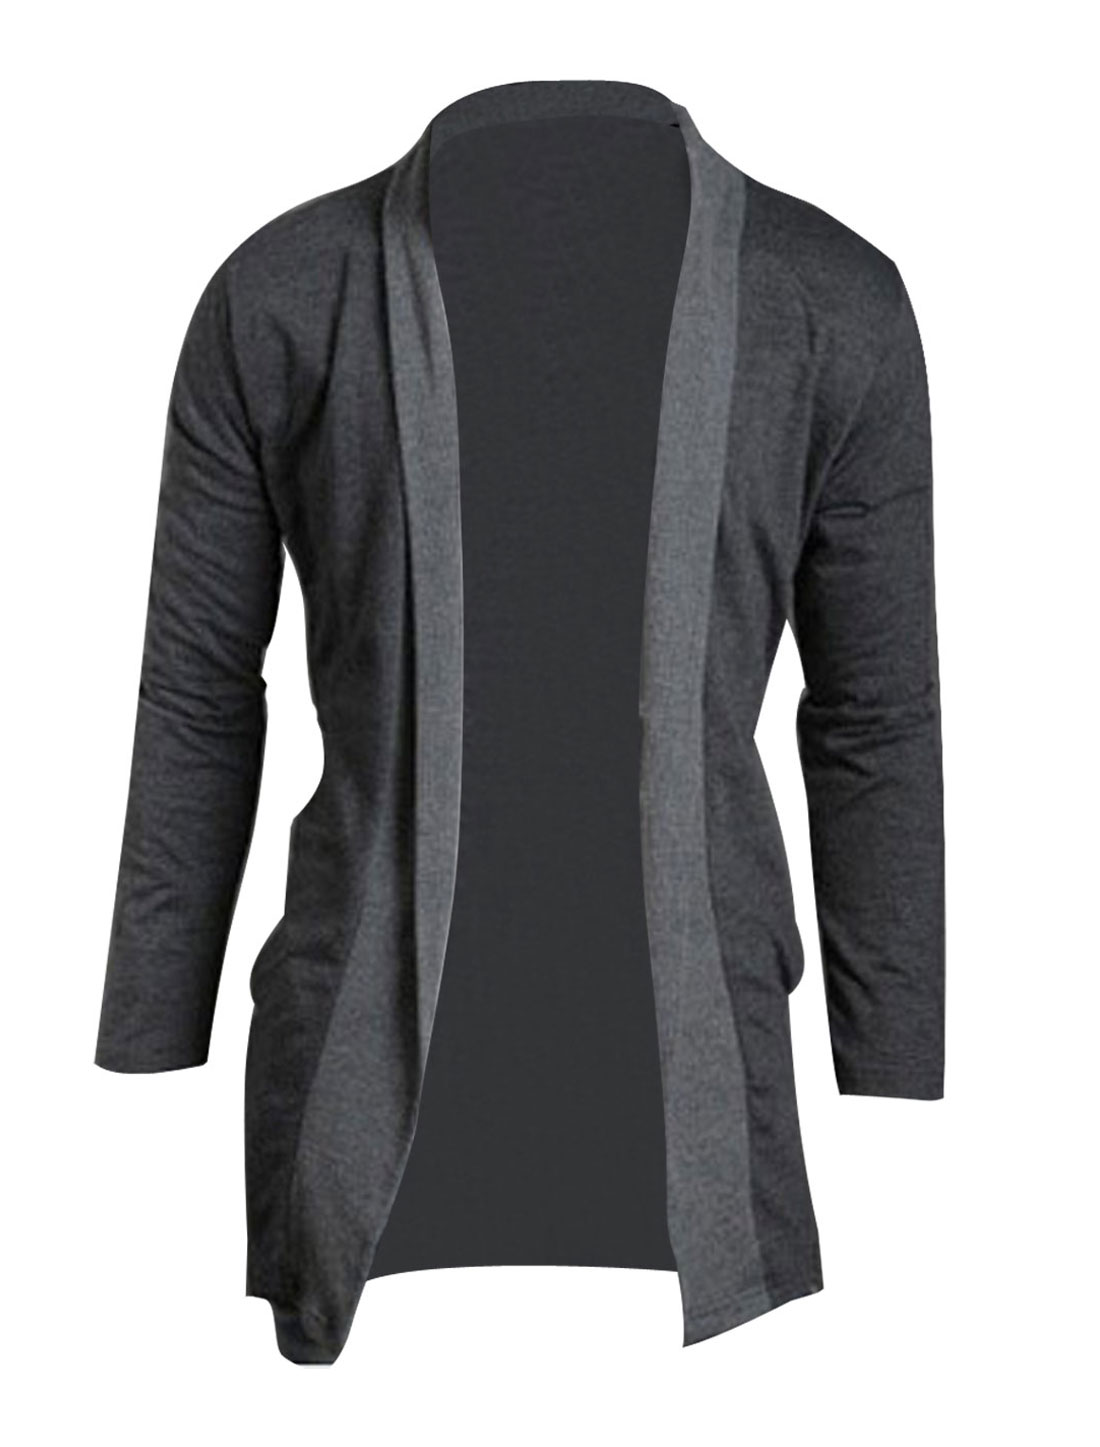 Mens Stylish Slim Fit Jackets Coats Casual Outerwear Dark Gray S